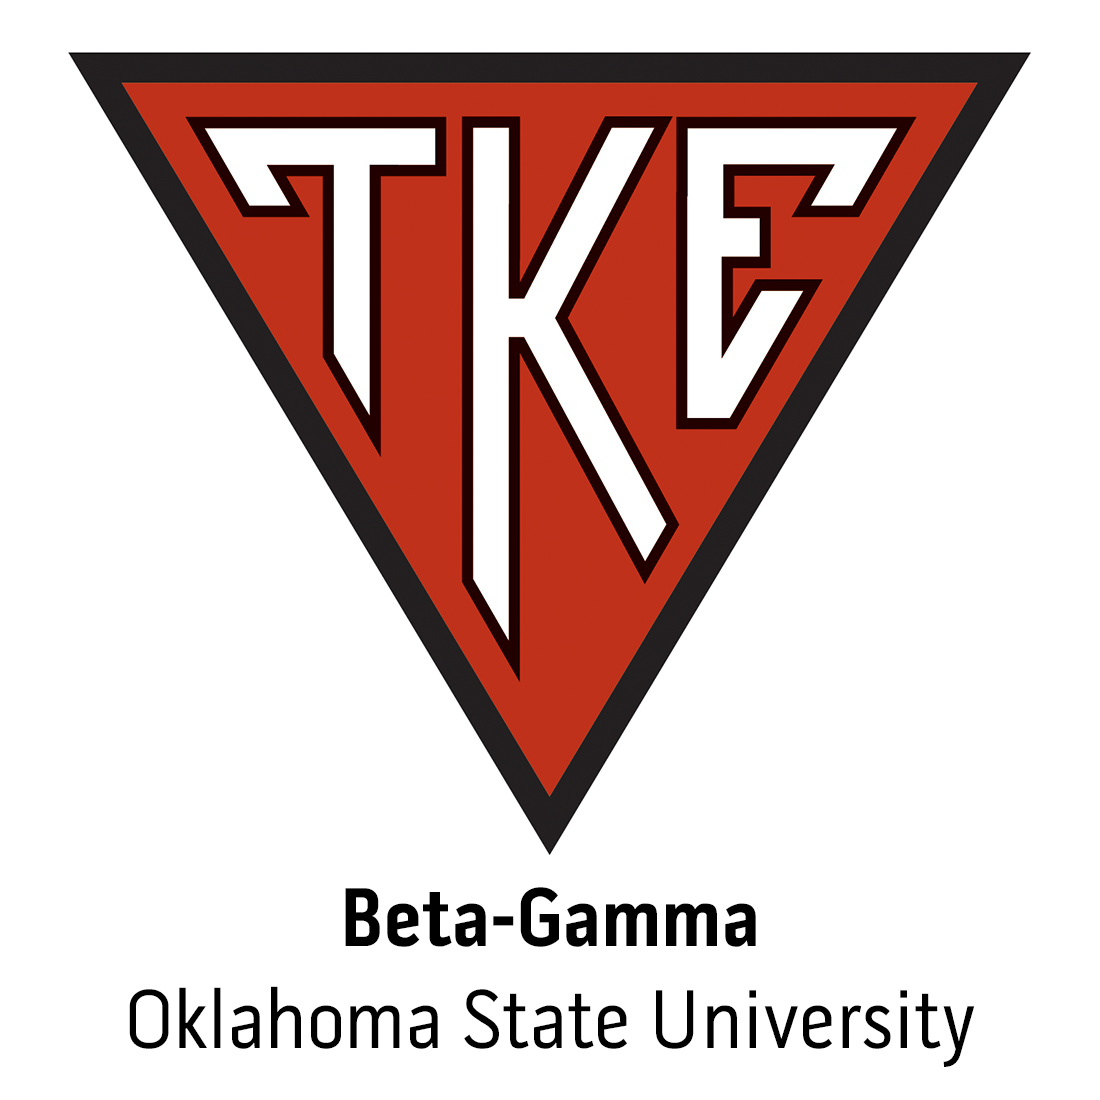 Beta-Gamma Colony at Oklahoma State University